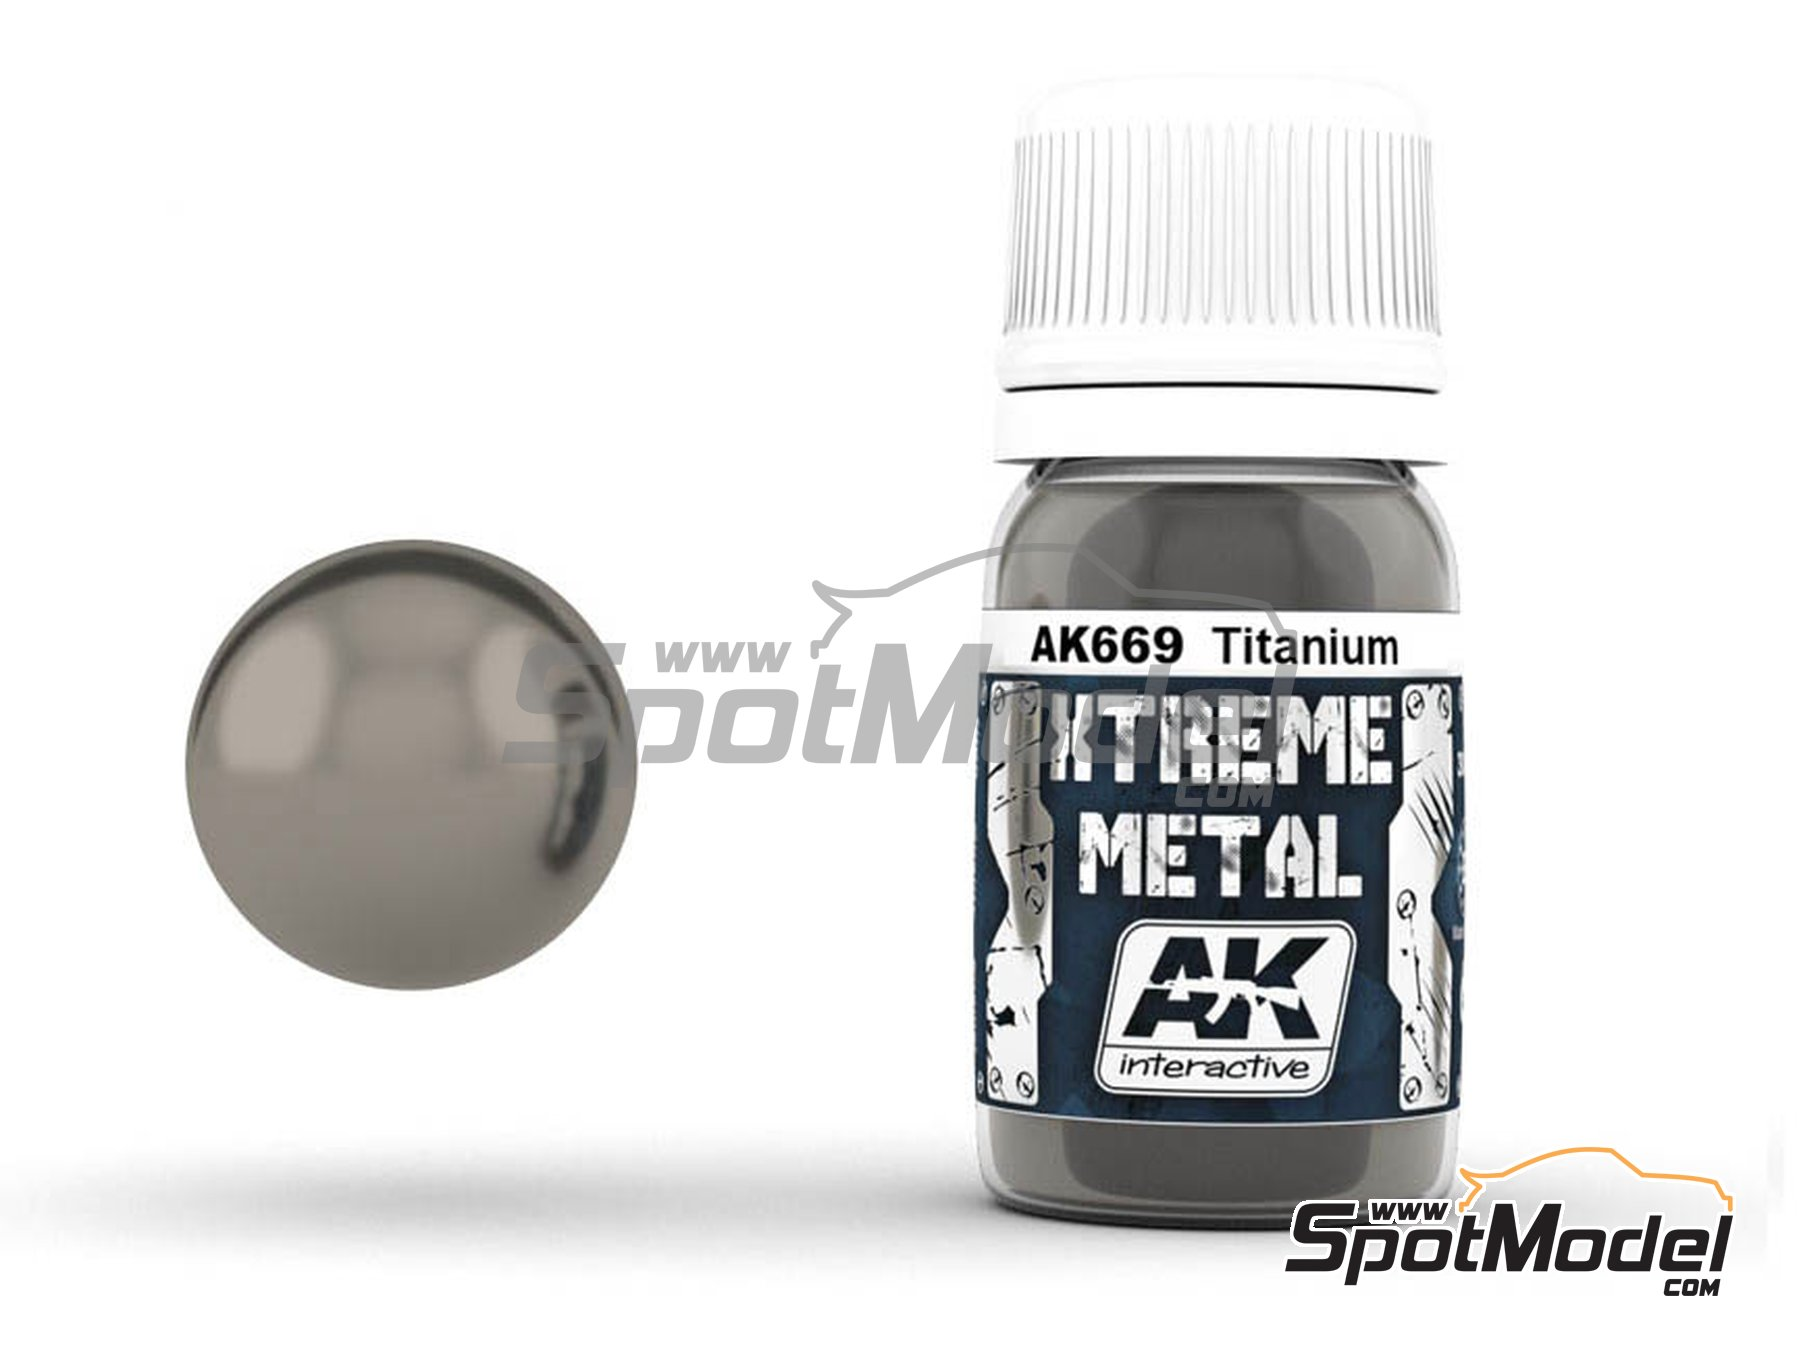 Image 1: Titanium | Xtreme metal paint manufactured by AK Interactive (ref. AK-669)